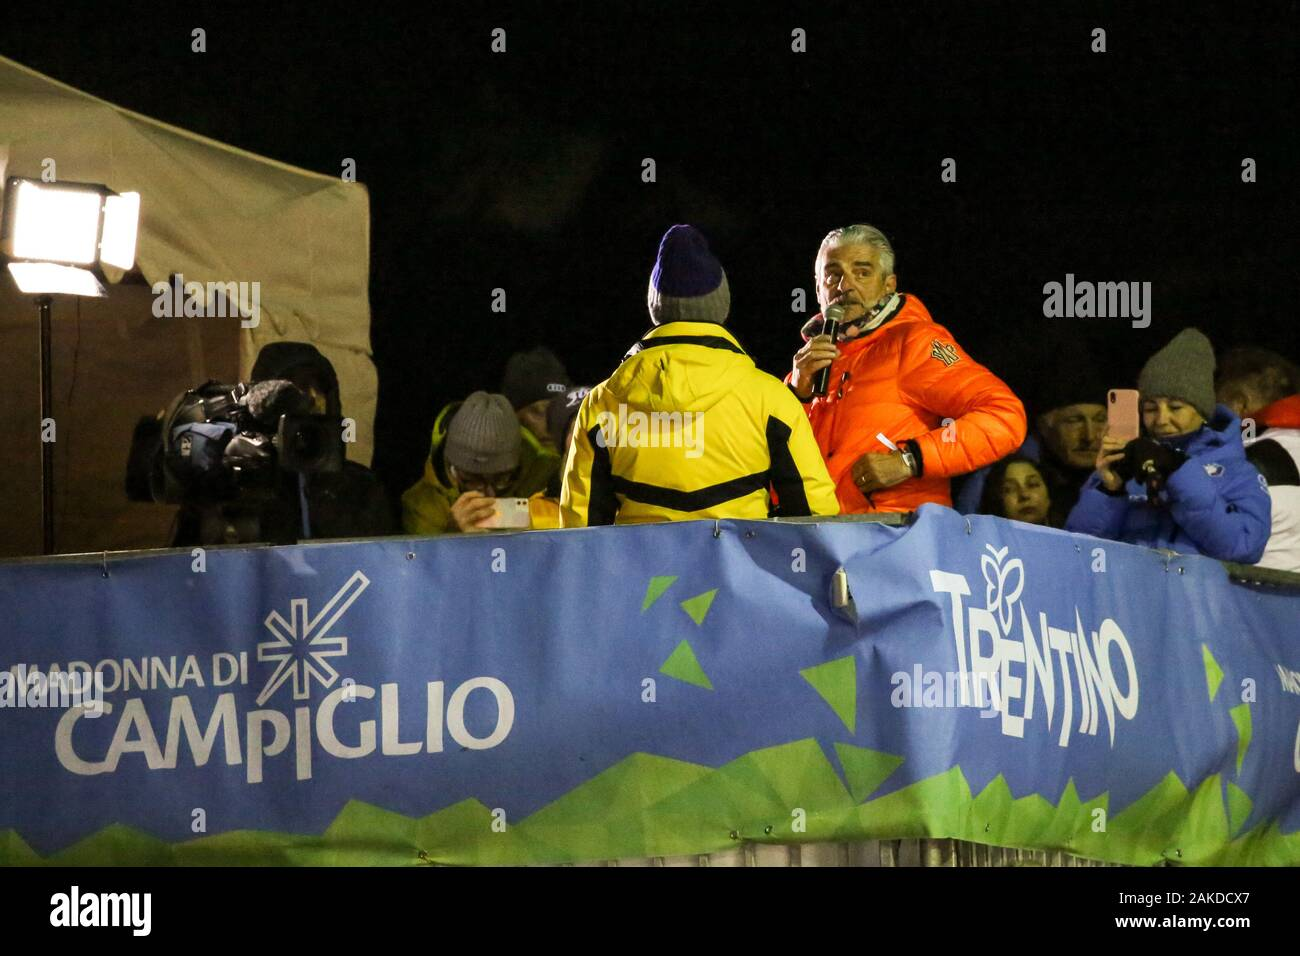 Madonna Di Campiglio, Italy. 08th Jan, 2020. maurizio arrivabene during FIS AUDI World Cup - 3Tre - Night Men Slalom, Ski in Madonna di Campiglio, Italy, January 08 2020 Credit: Independent Photo Agency/Alamy Live News Stock Photo